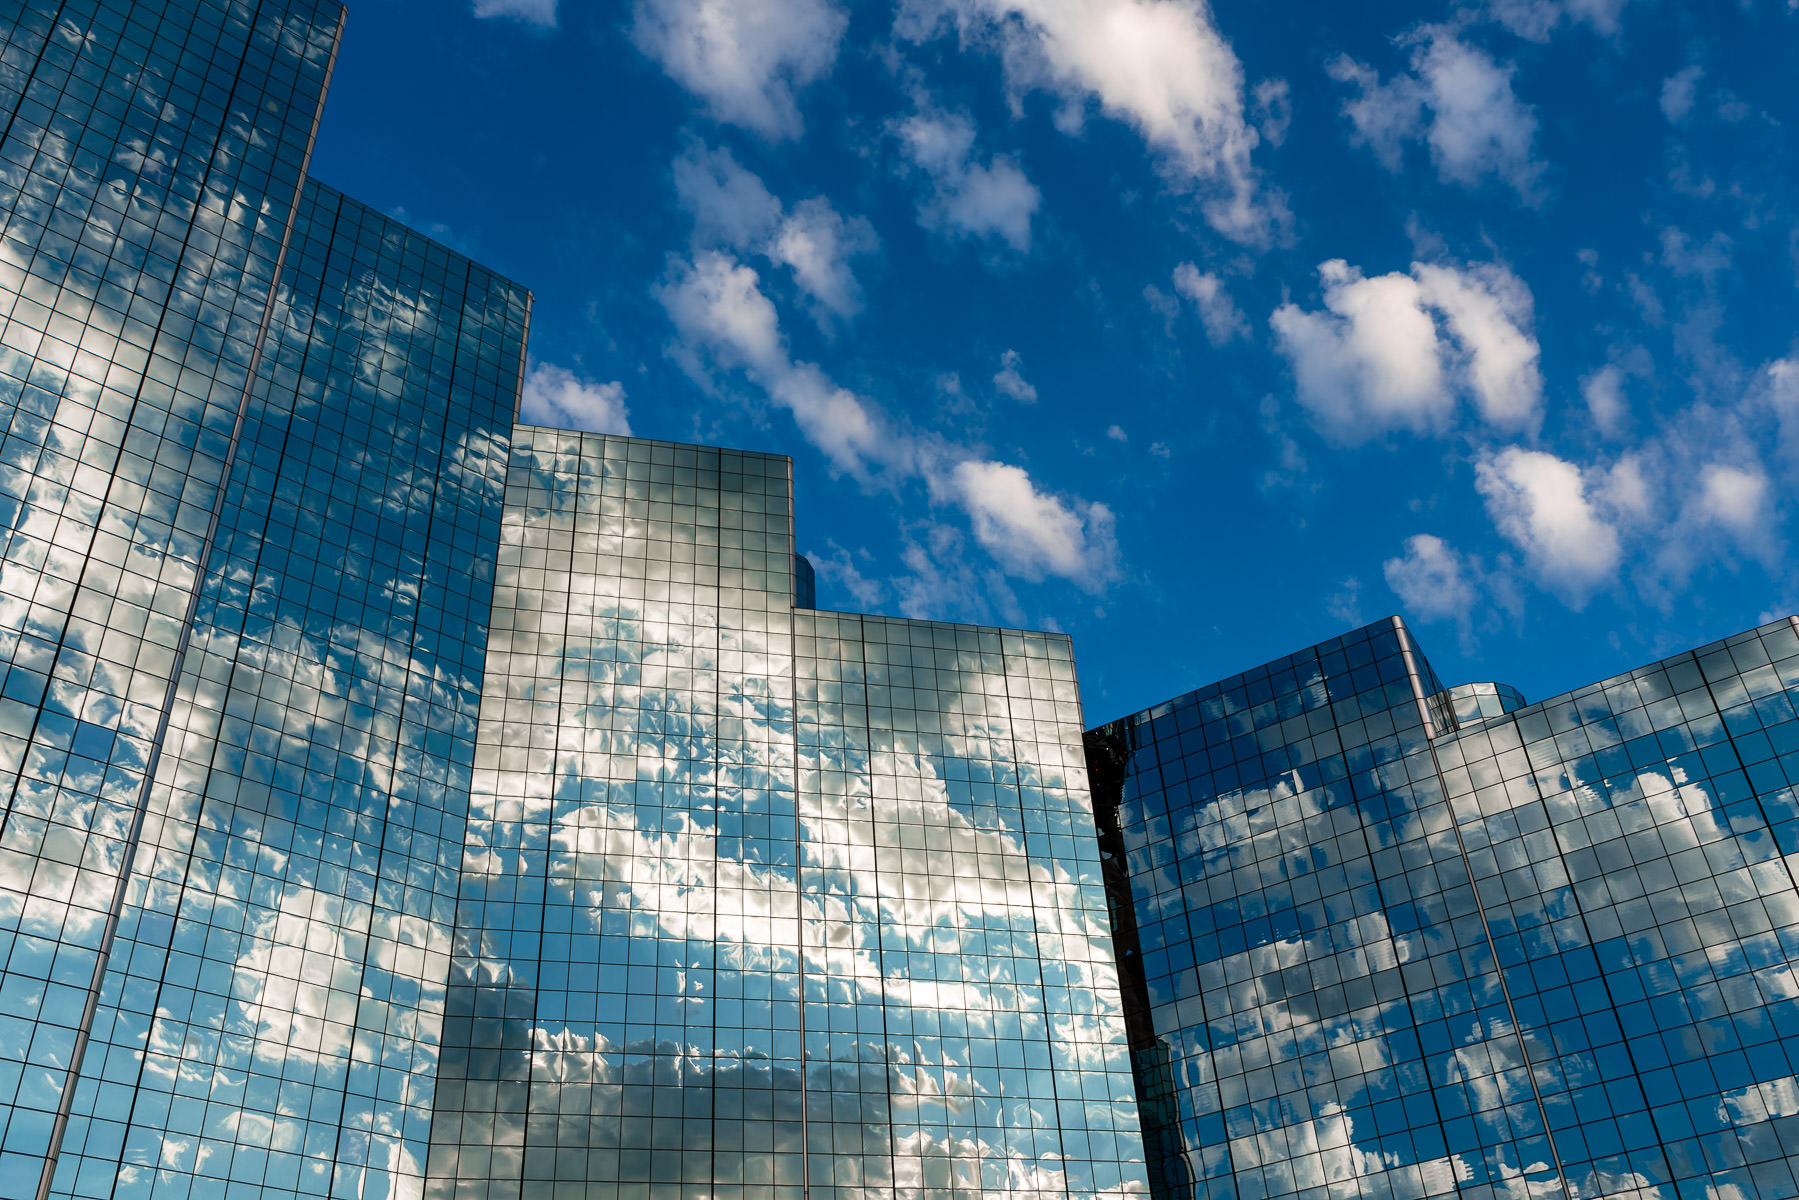 The cloudy North Texas sky is reflected in the mirrored facade of the Hyatt Regency in Downtown Dallas.